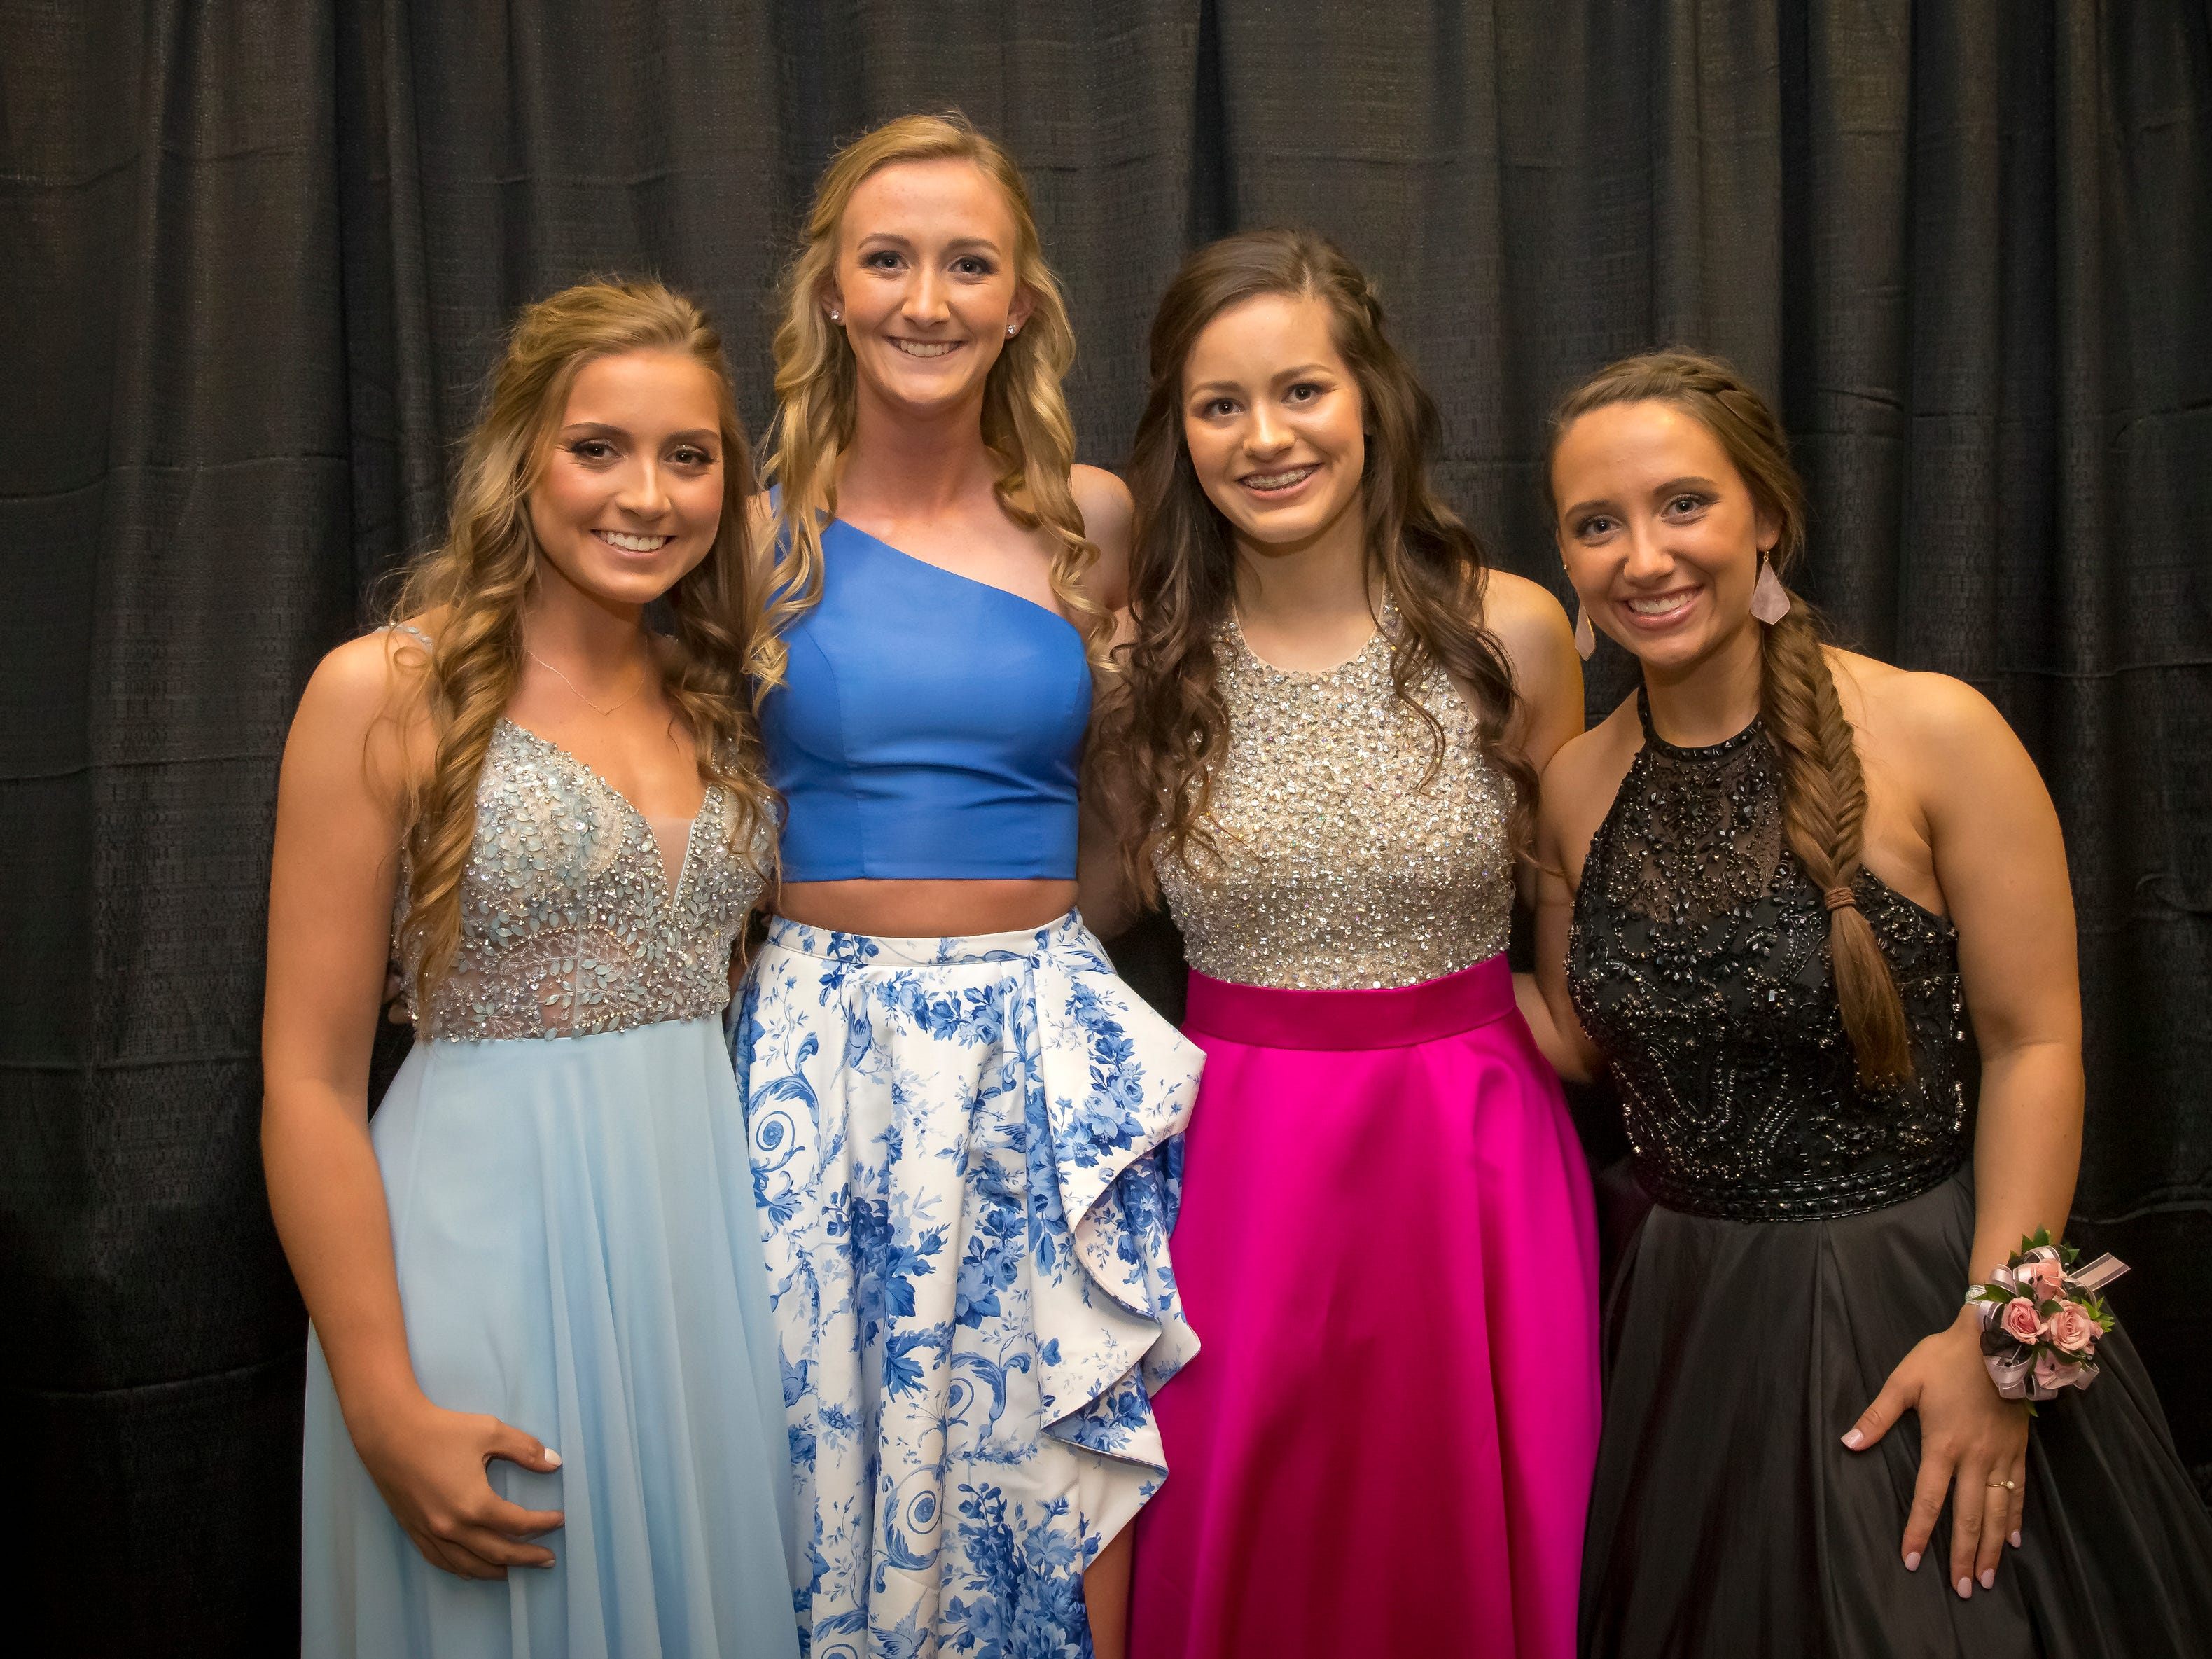 Anna Arbit, Emma Boylan, Sydney Blankenship, Lindsey Bell arrive at the Oakland High School prom held at Lane Agri-Park Saturday, April, 27, 2019 in Murfreesboro.